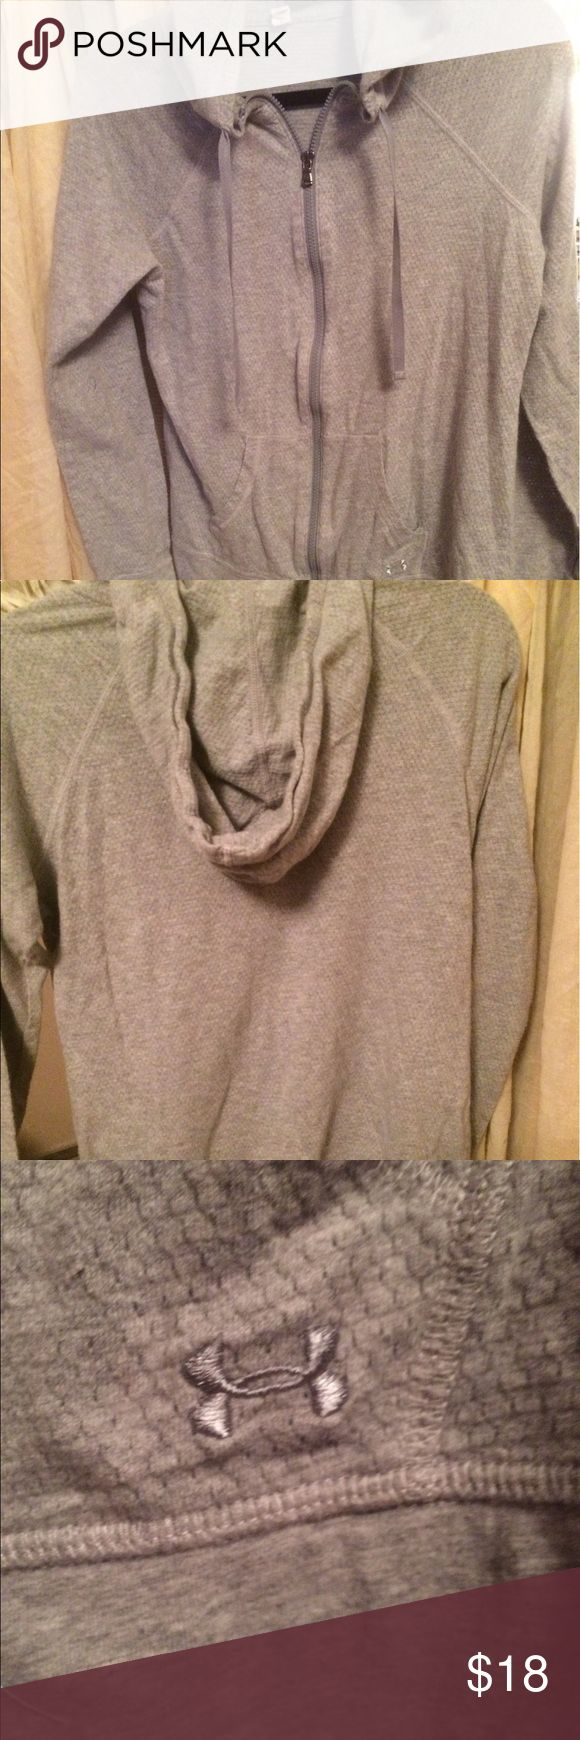 UNDER ARMOUR  LIGHTWEIGHT GRAY ZIP UP HOODIE UNDER ARMOUR LIGHTWEIGHT GRAY ZIP UP HOODIE WOMENS SIZE LARGE Under Armour Jackets & Coats